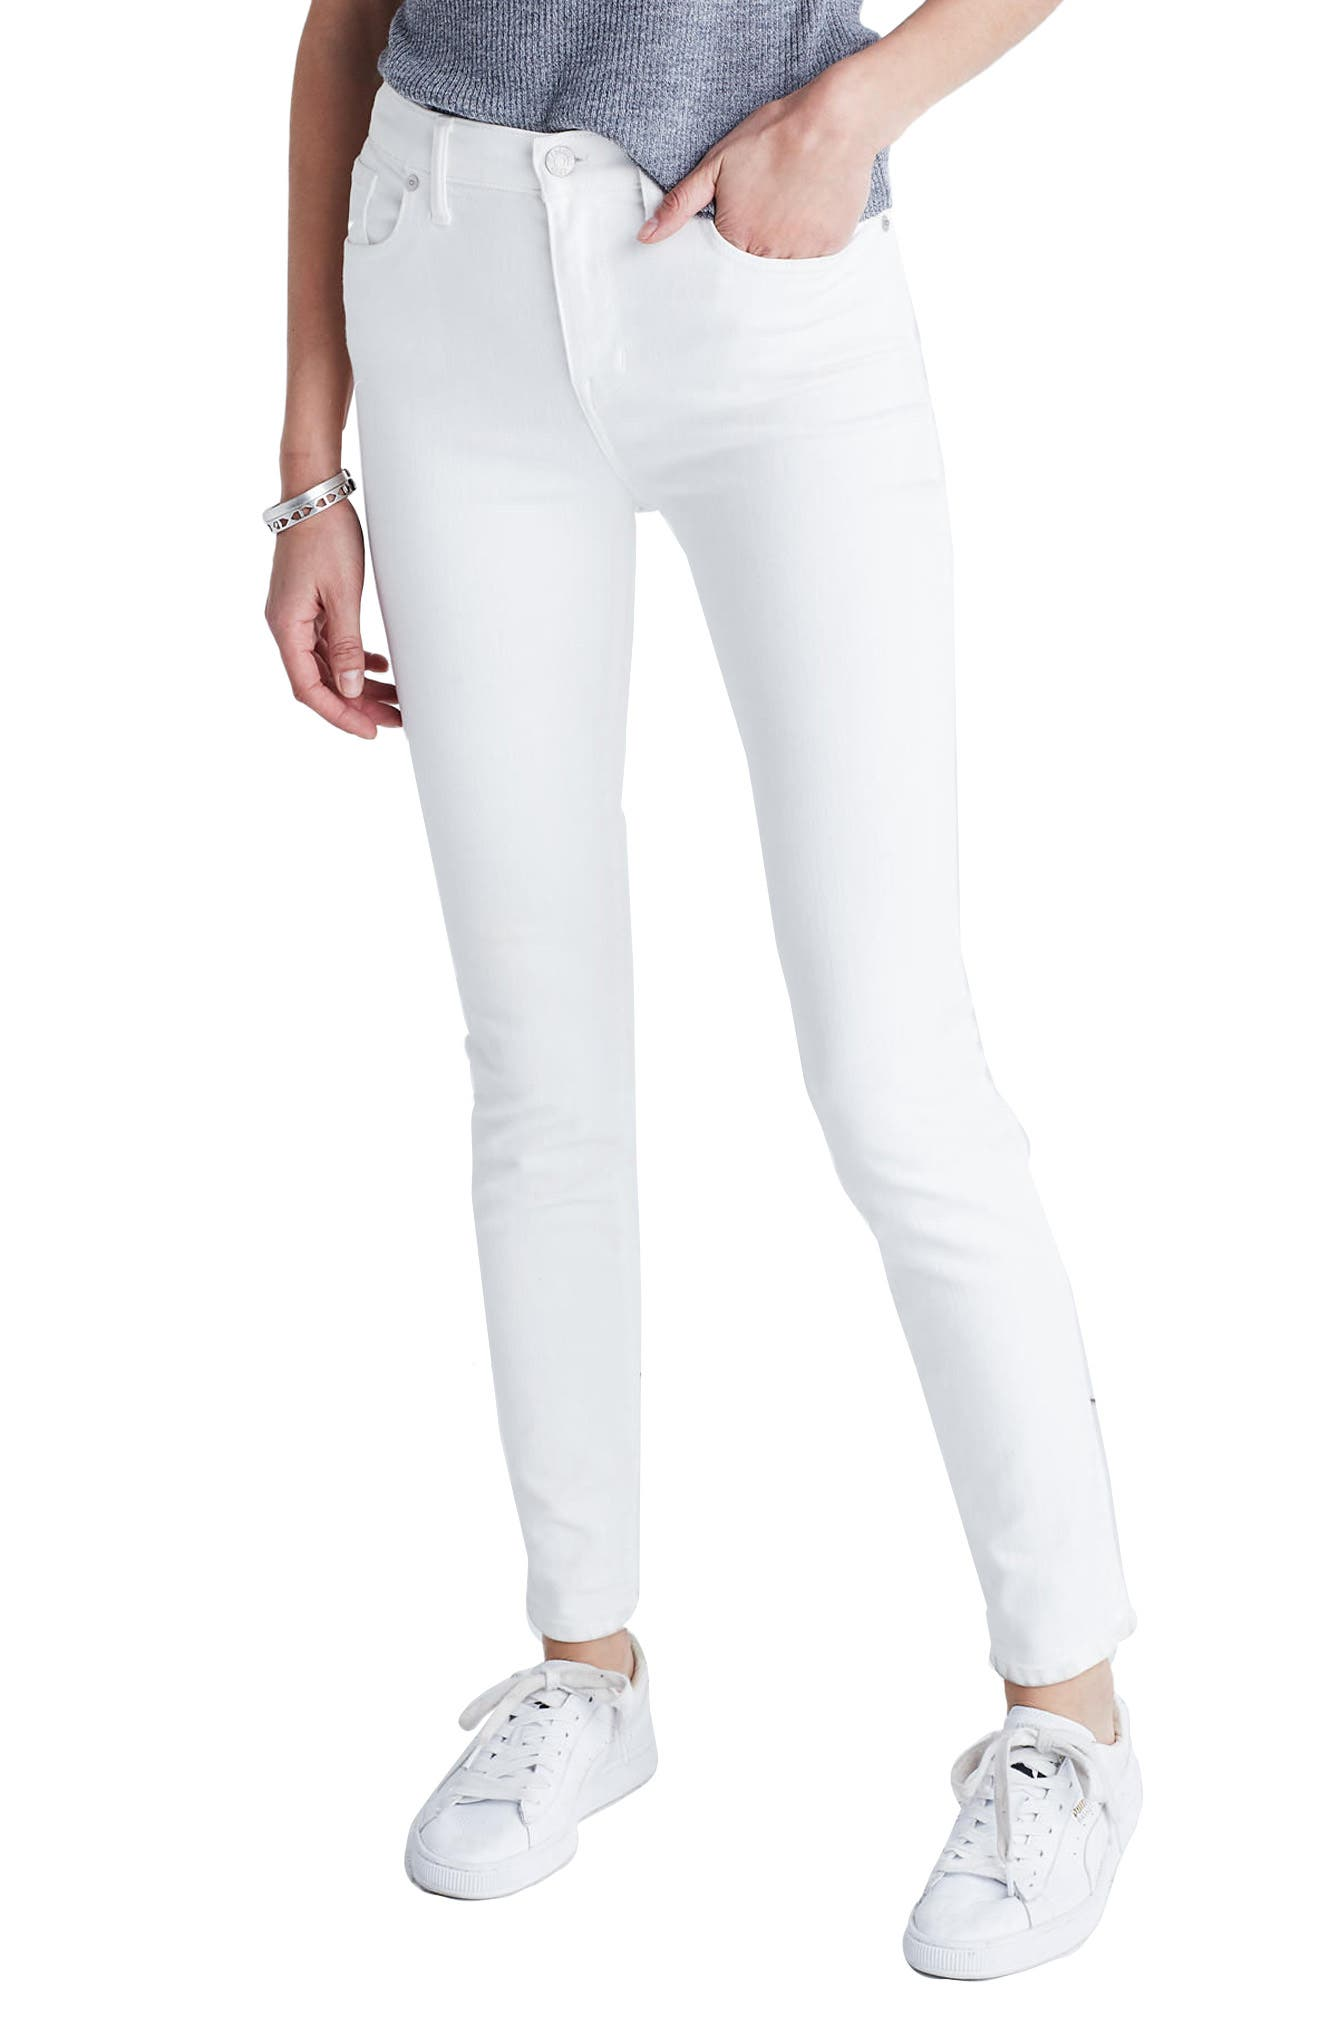 MADEWELL,                             9-Inch High-Rise Skinny Jeans,                             Main thumbnail 1, color,                             100